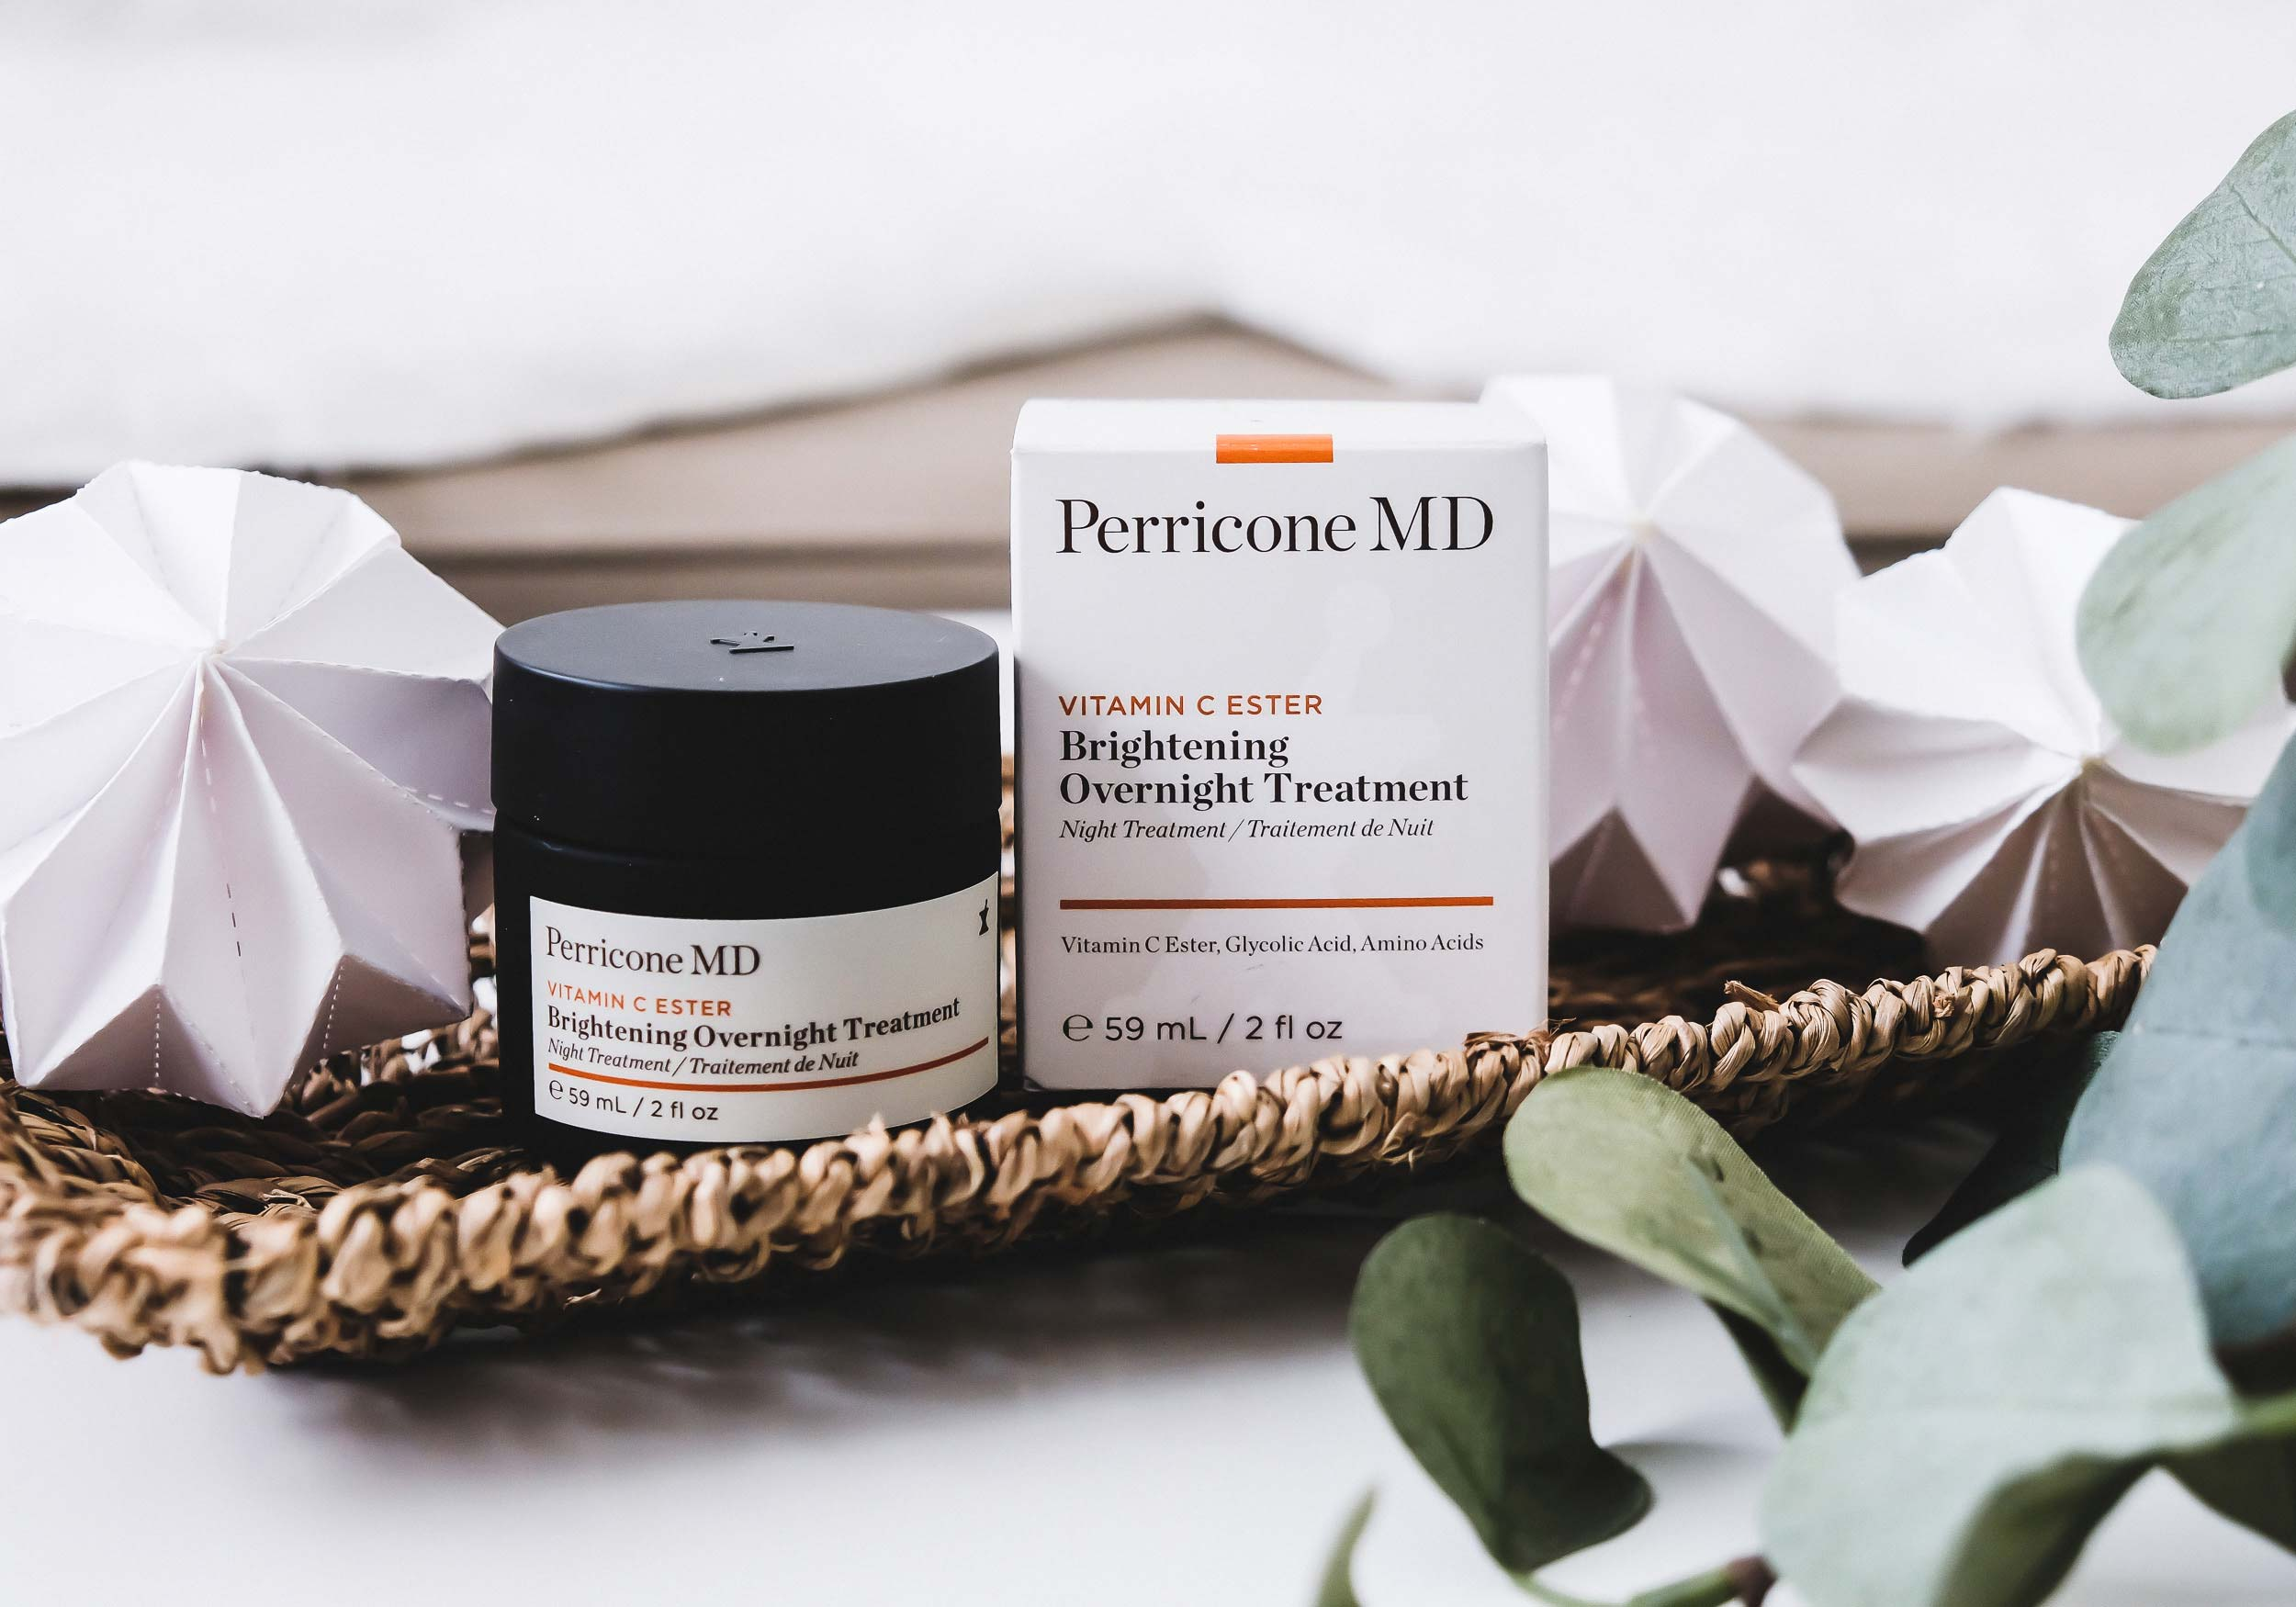 DR. PERRICONE VITAMIN C ESTER Brightening Overnight Treatment